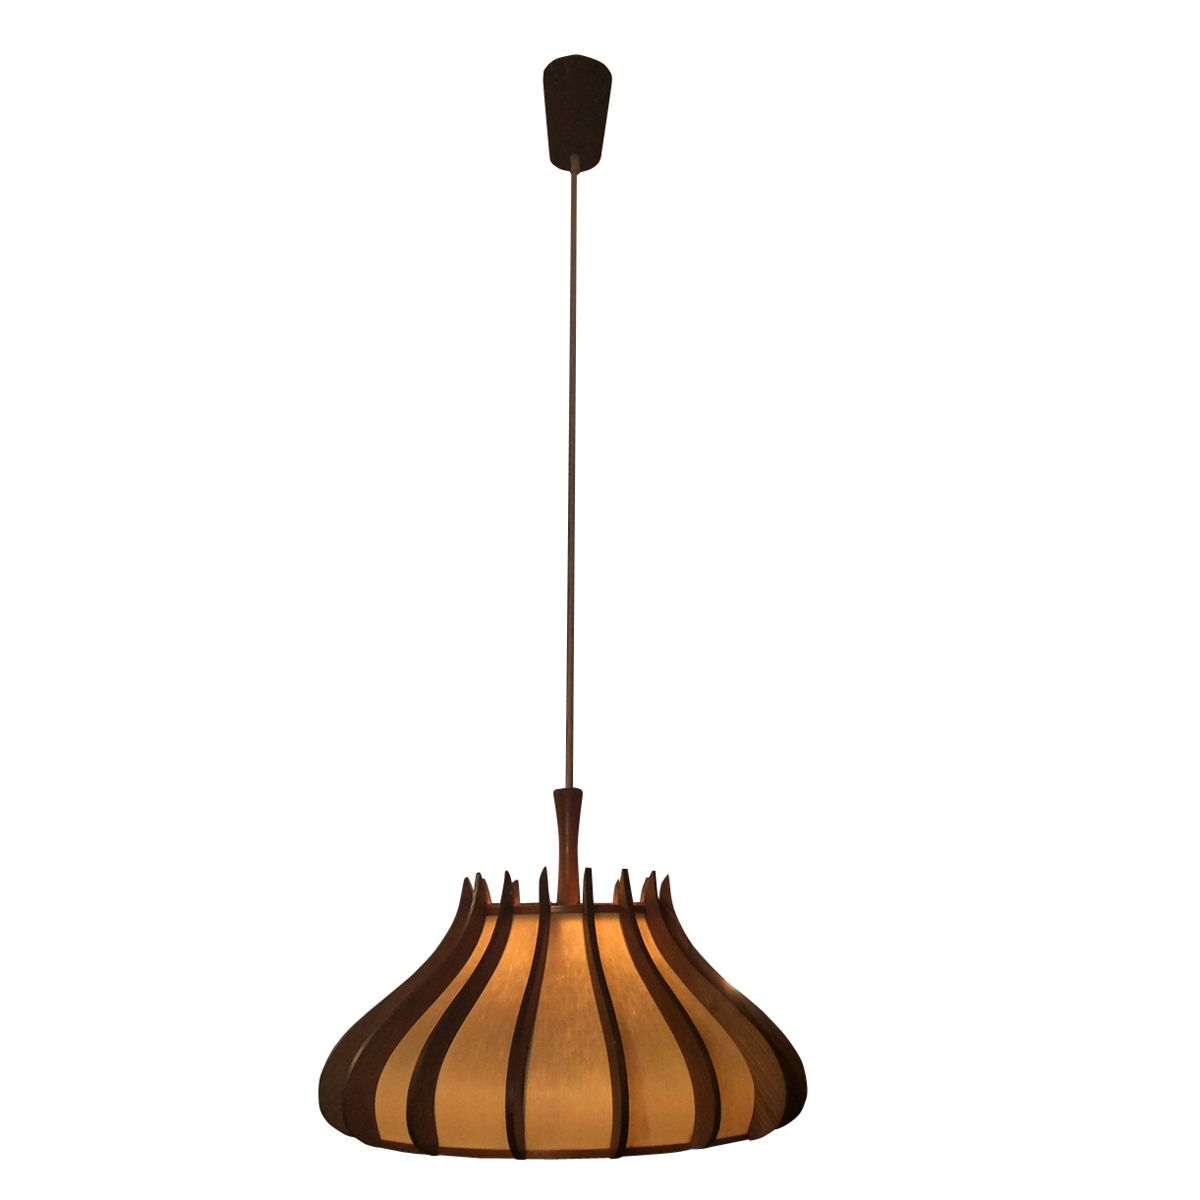 Mid century danish ceiling lamp for sale at pamono for Mid century ceiling lamp